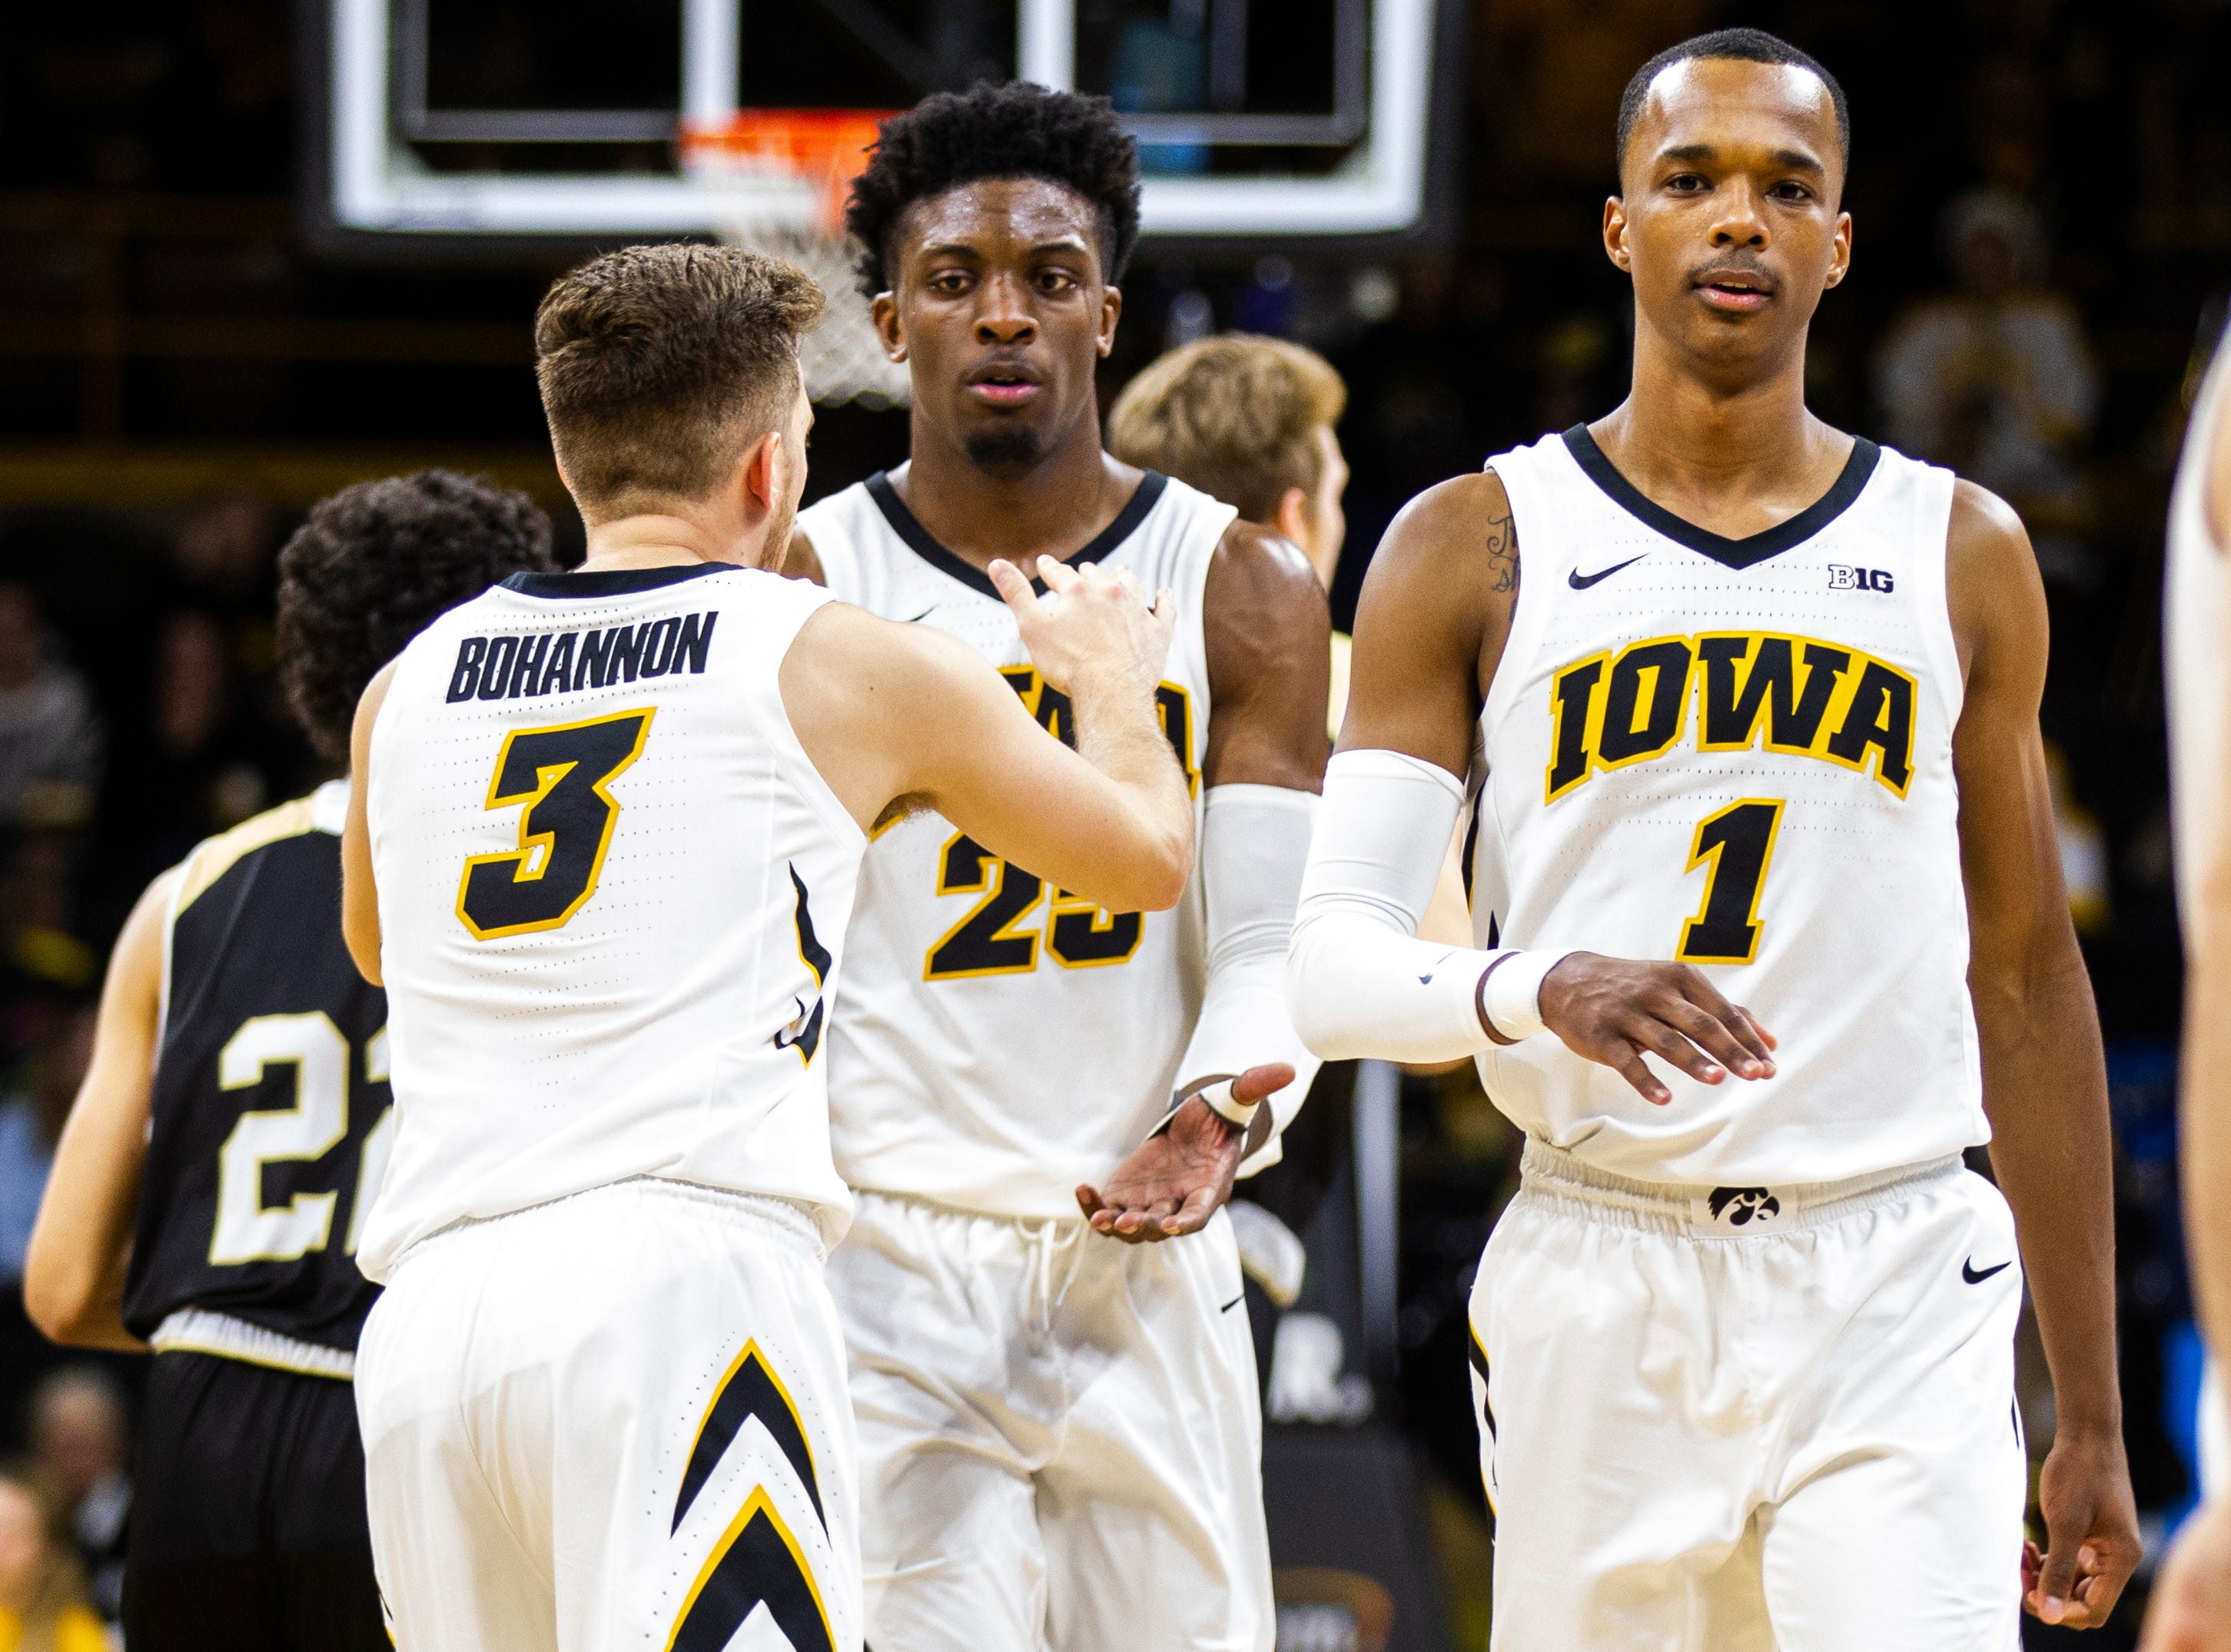 Iowa guard Jordan Bohannon (3) high-fives Iowa forward Tyler Cook (25) after a NCAA men's basketball game on Saturday, Dec. 29, 2018, at Carver-Hawkeye Arena in Iowa City. The Hawkeyes defeated the Bryant Bulldogs, 72-67.